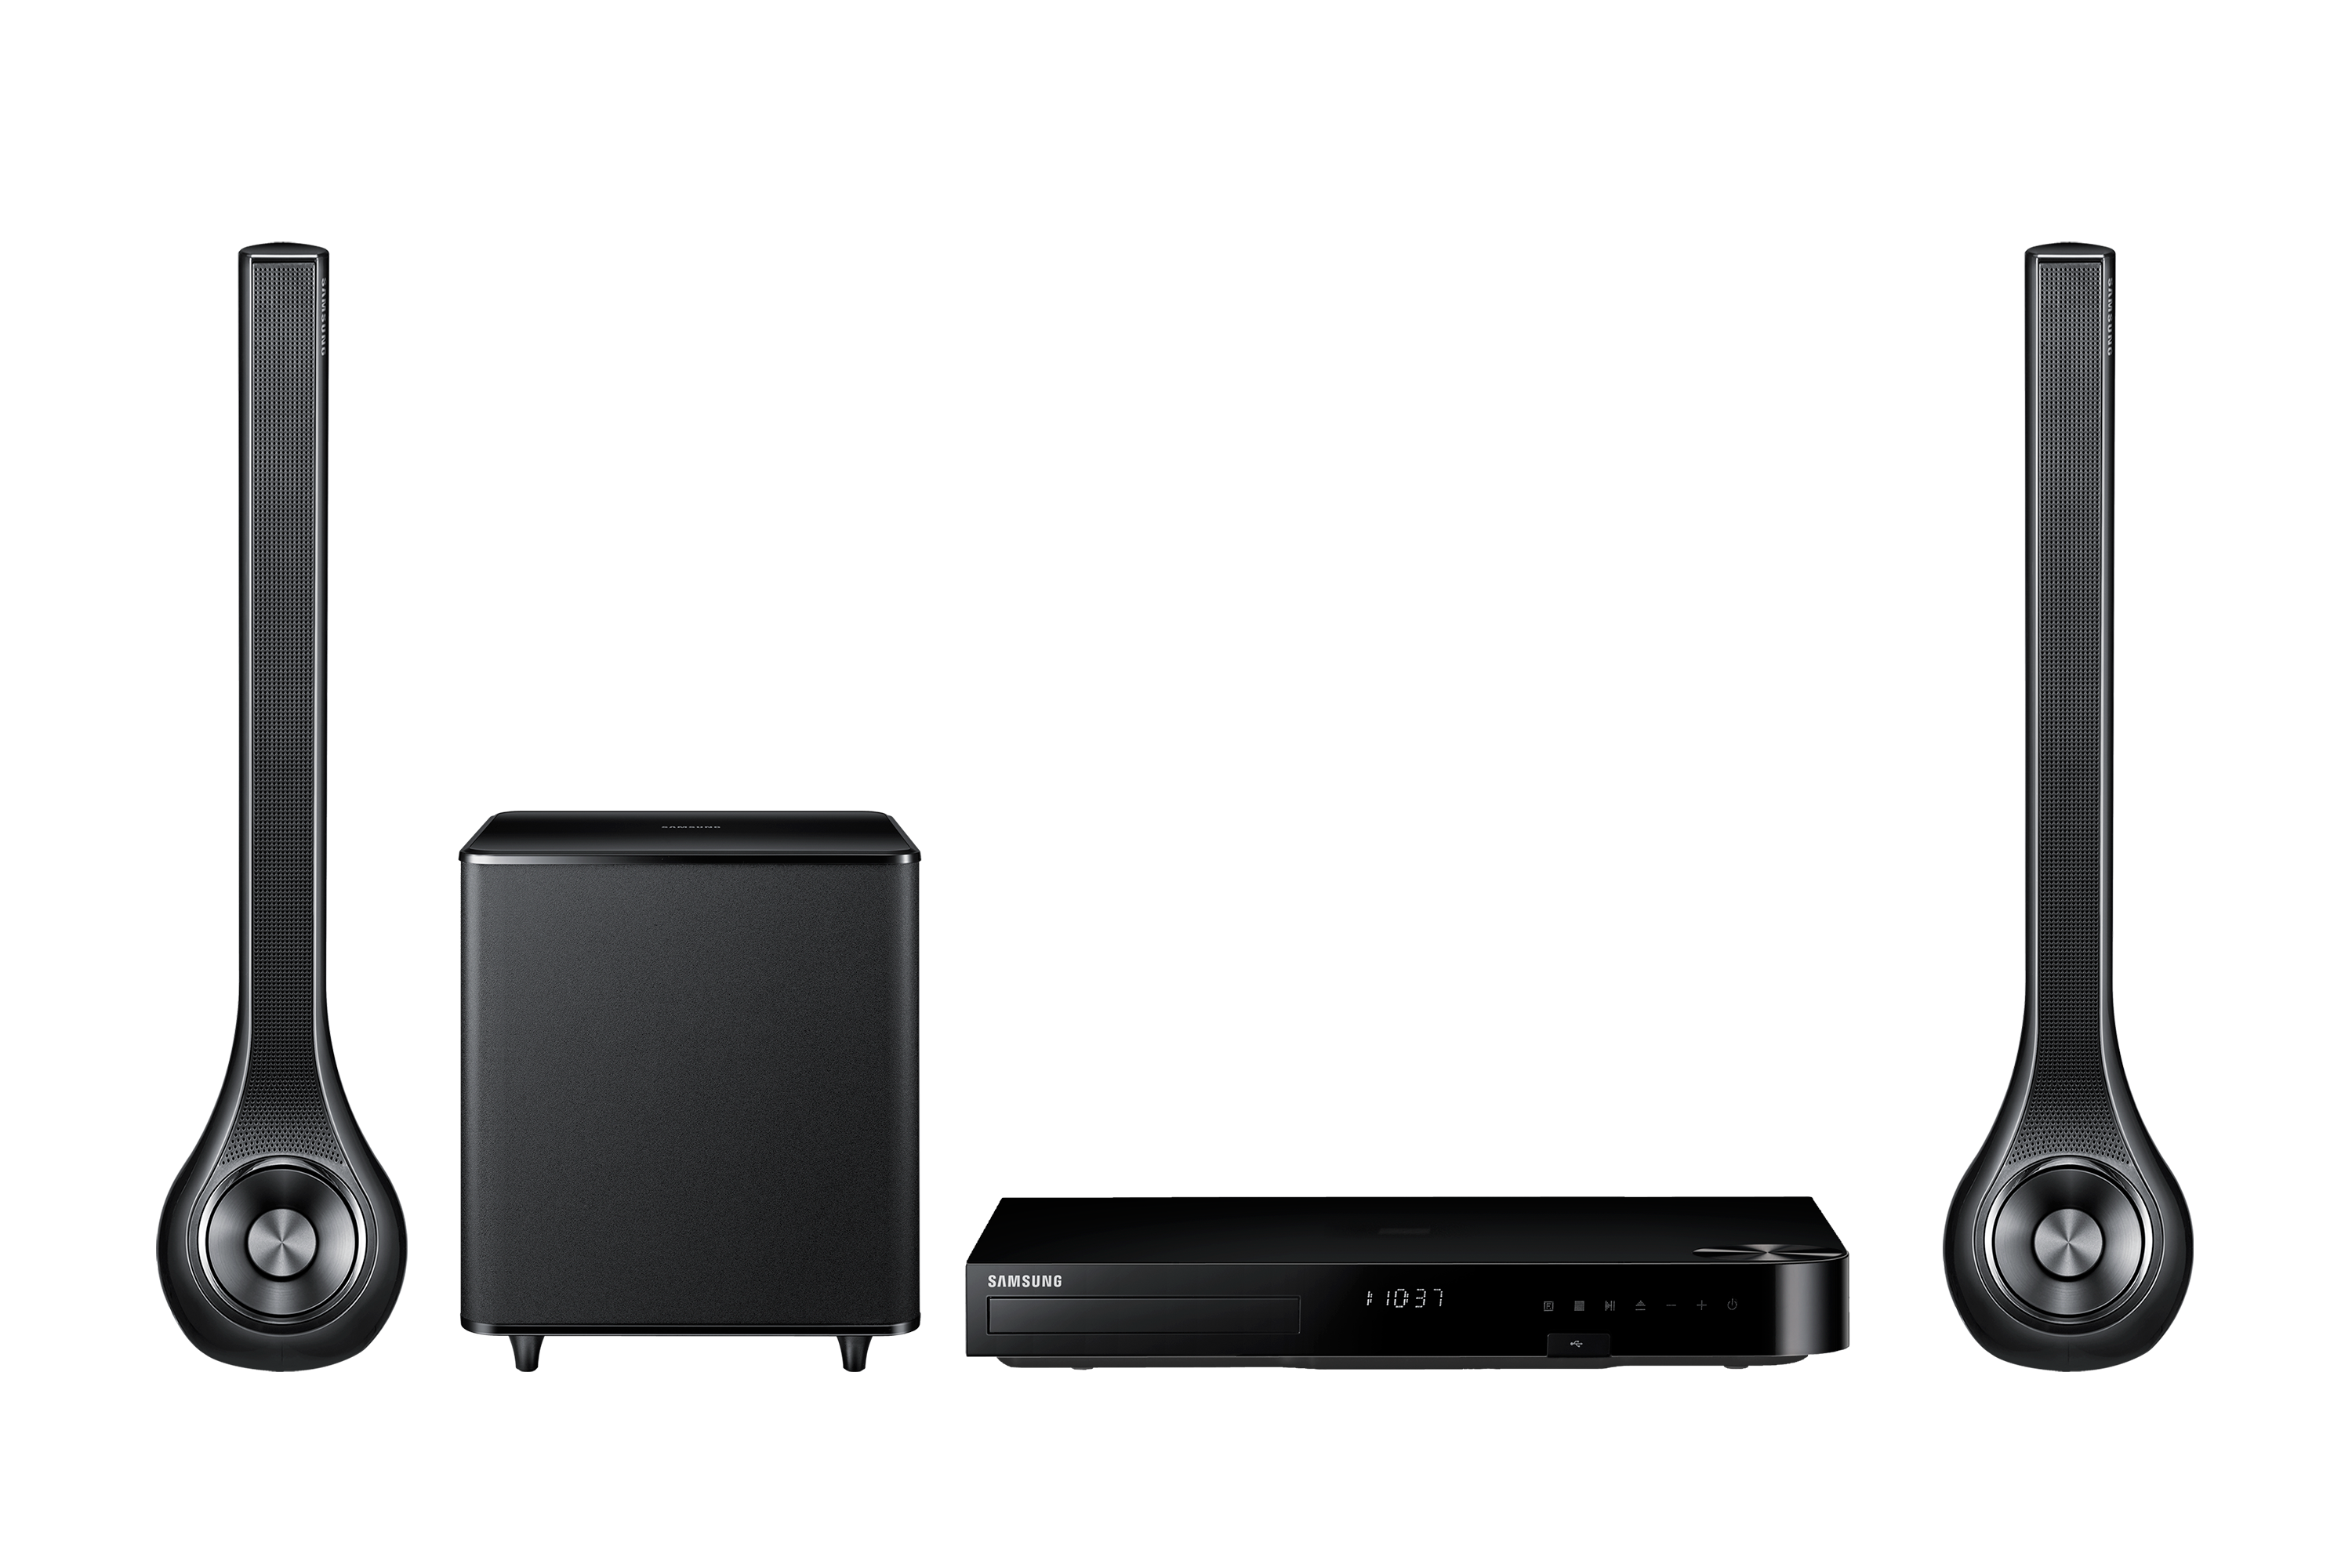 HT-FS5200 2 Speaker Smart 3D Blu-ray Home Theatre System